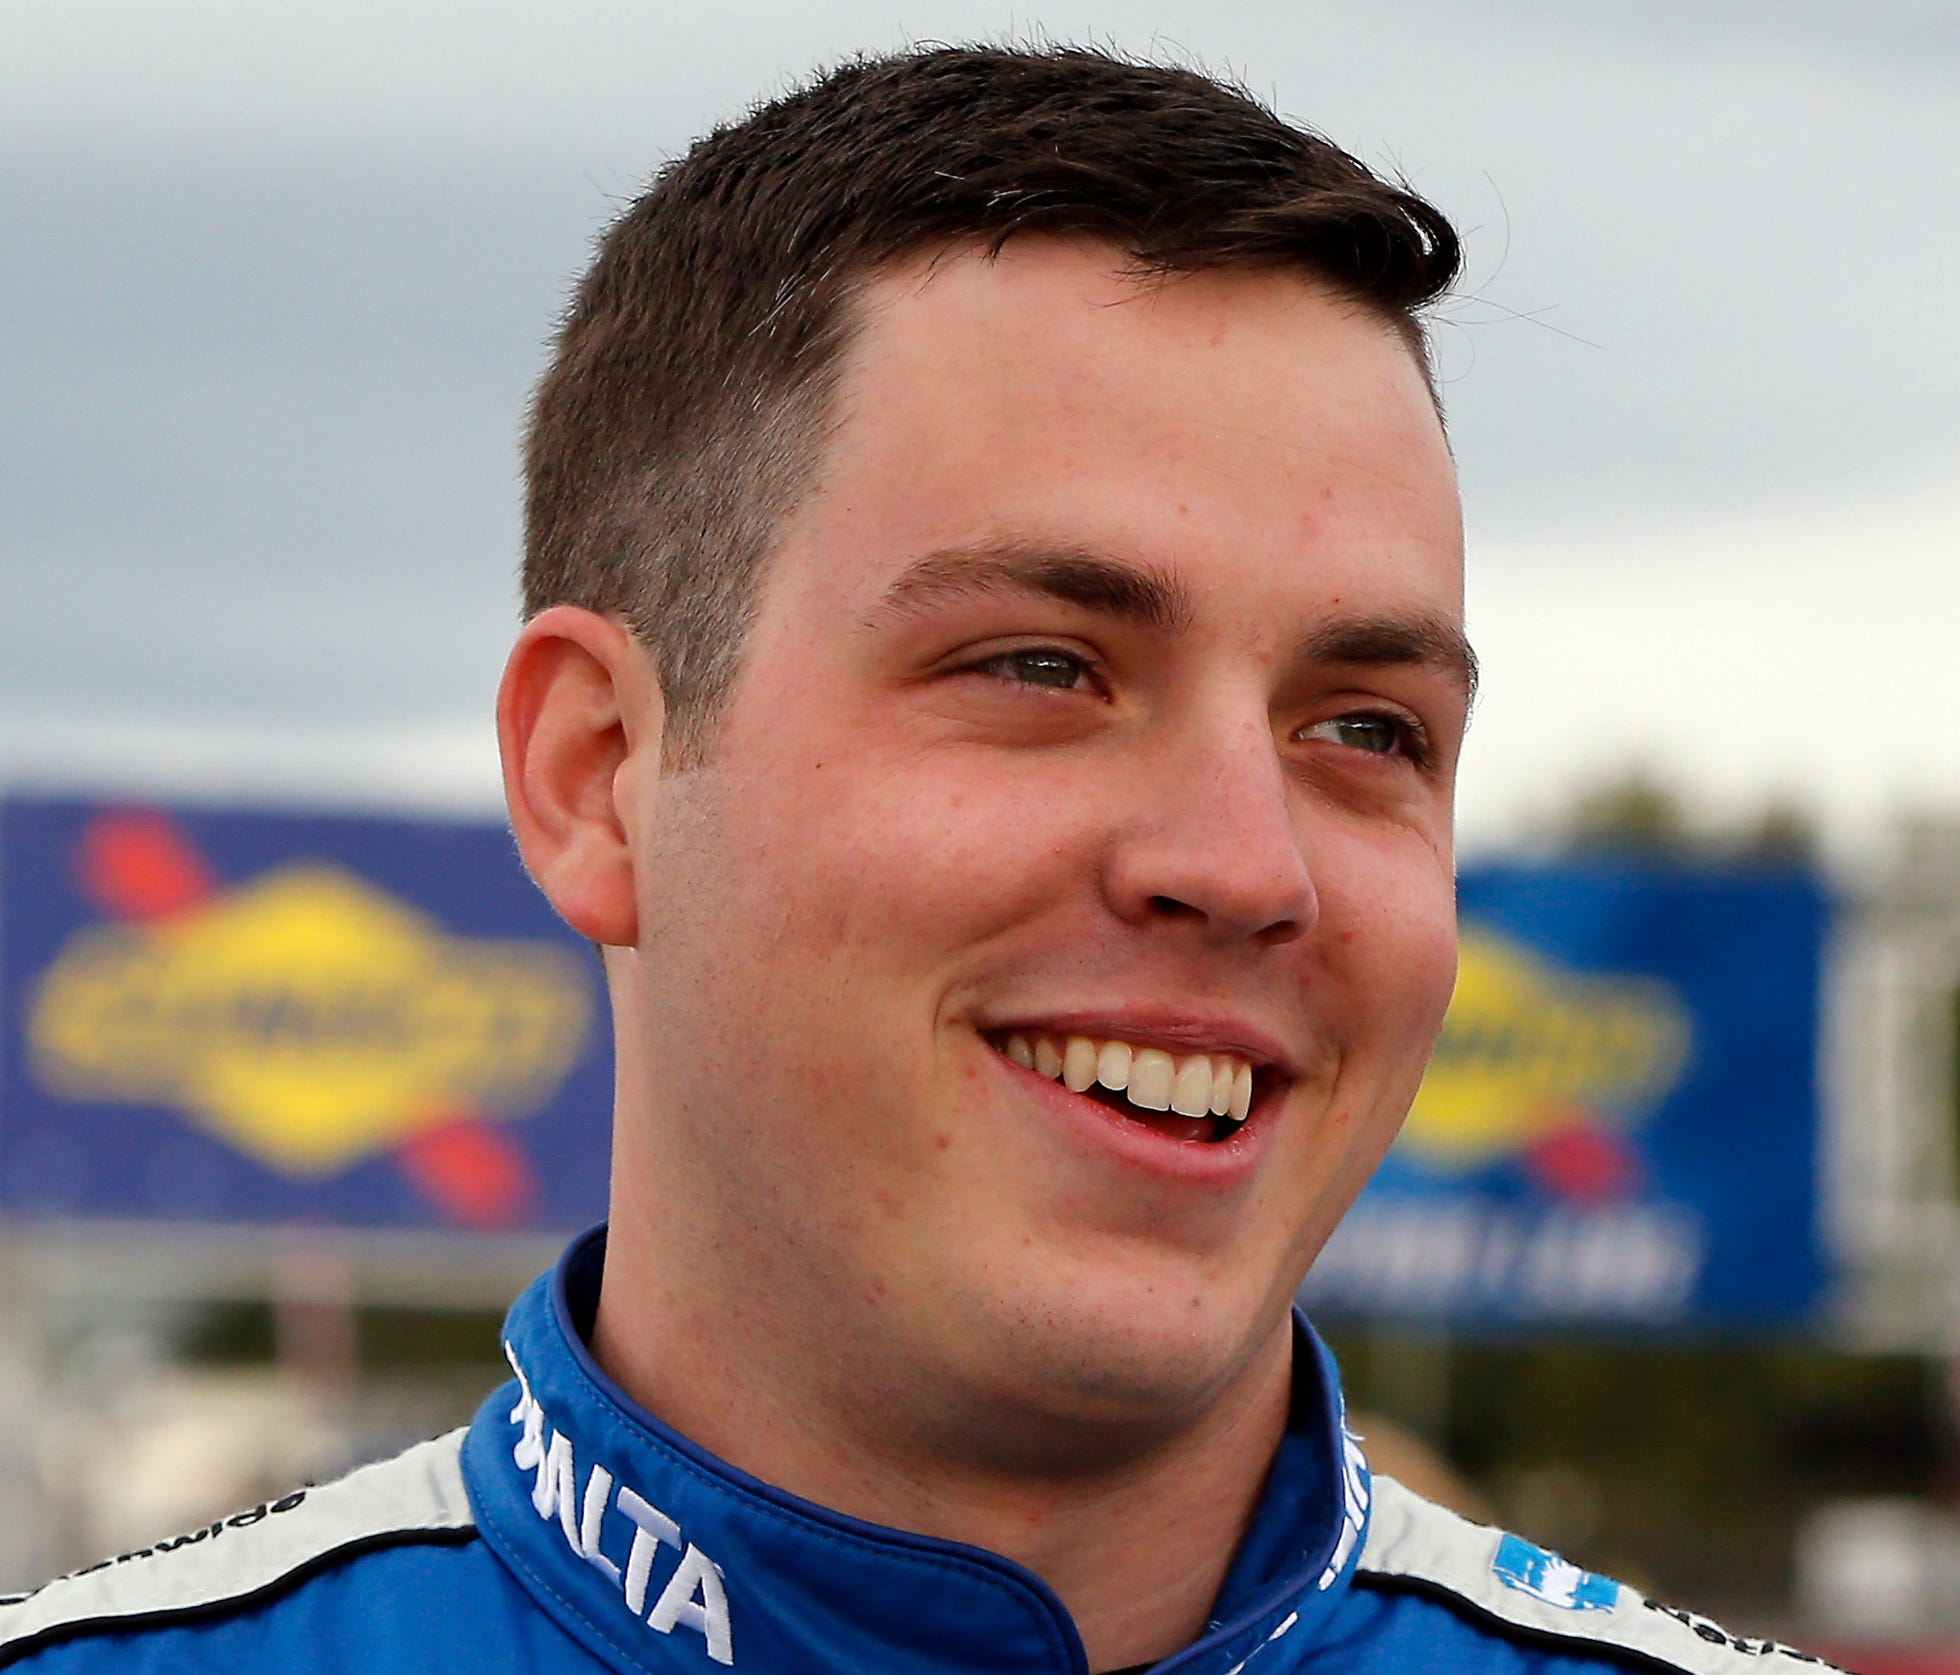 Alex Bowman will drive the No. 88 Chevrolet for Hendrick Motorsports in 2018.